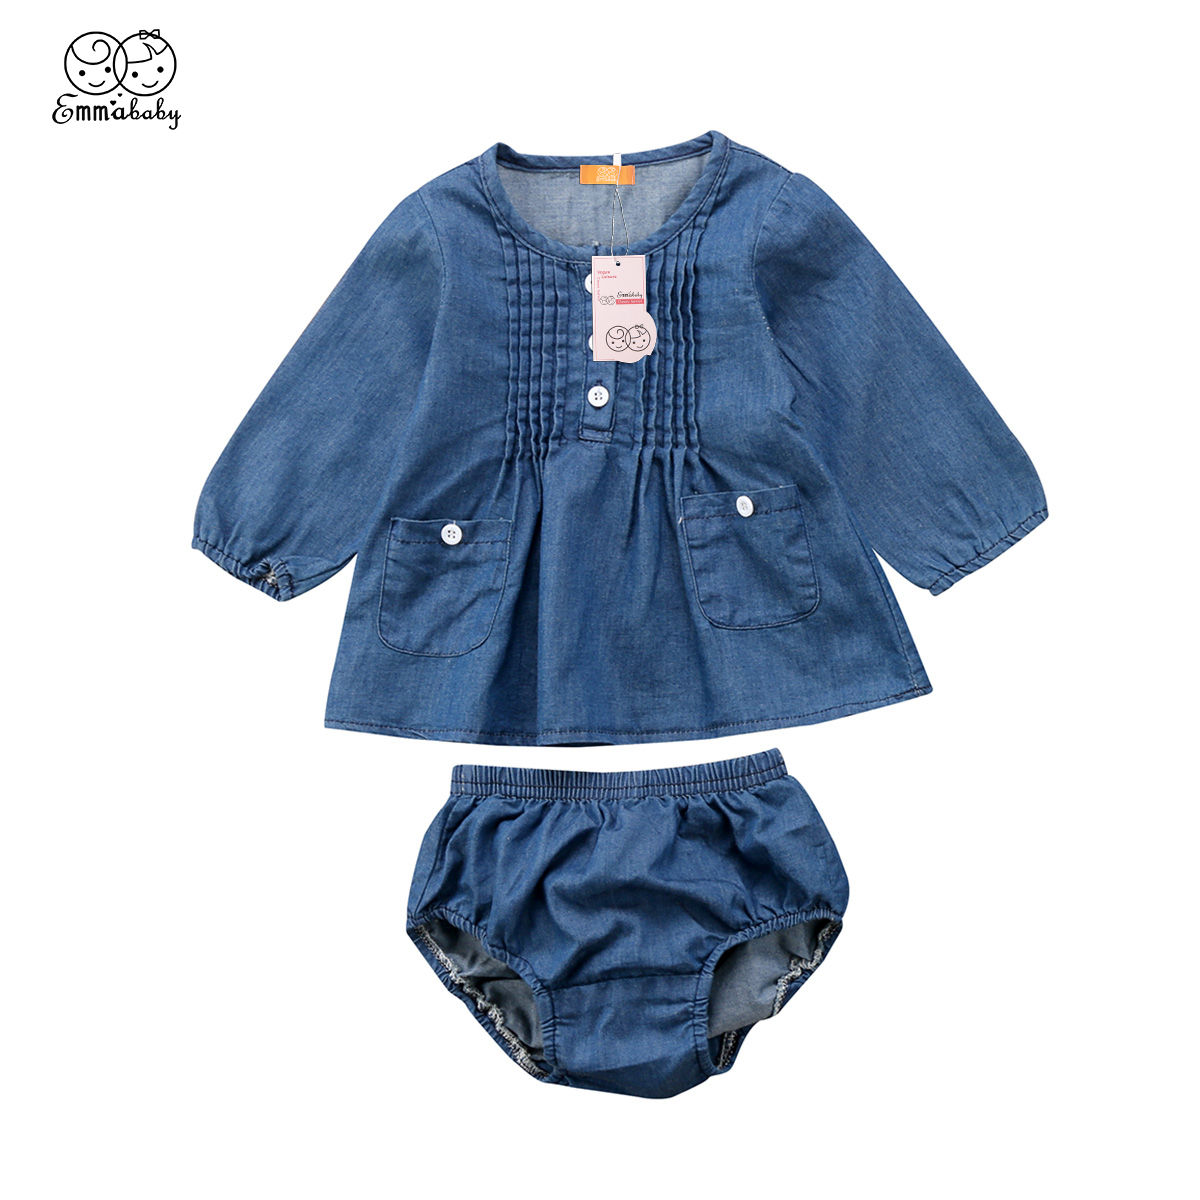 2018 new fashion babies clothing Newborn Baby Girls Denim Long Sleeve ruffles Top Blouse Shorts Outfits Clothes set 2 styles